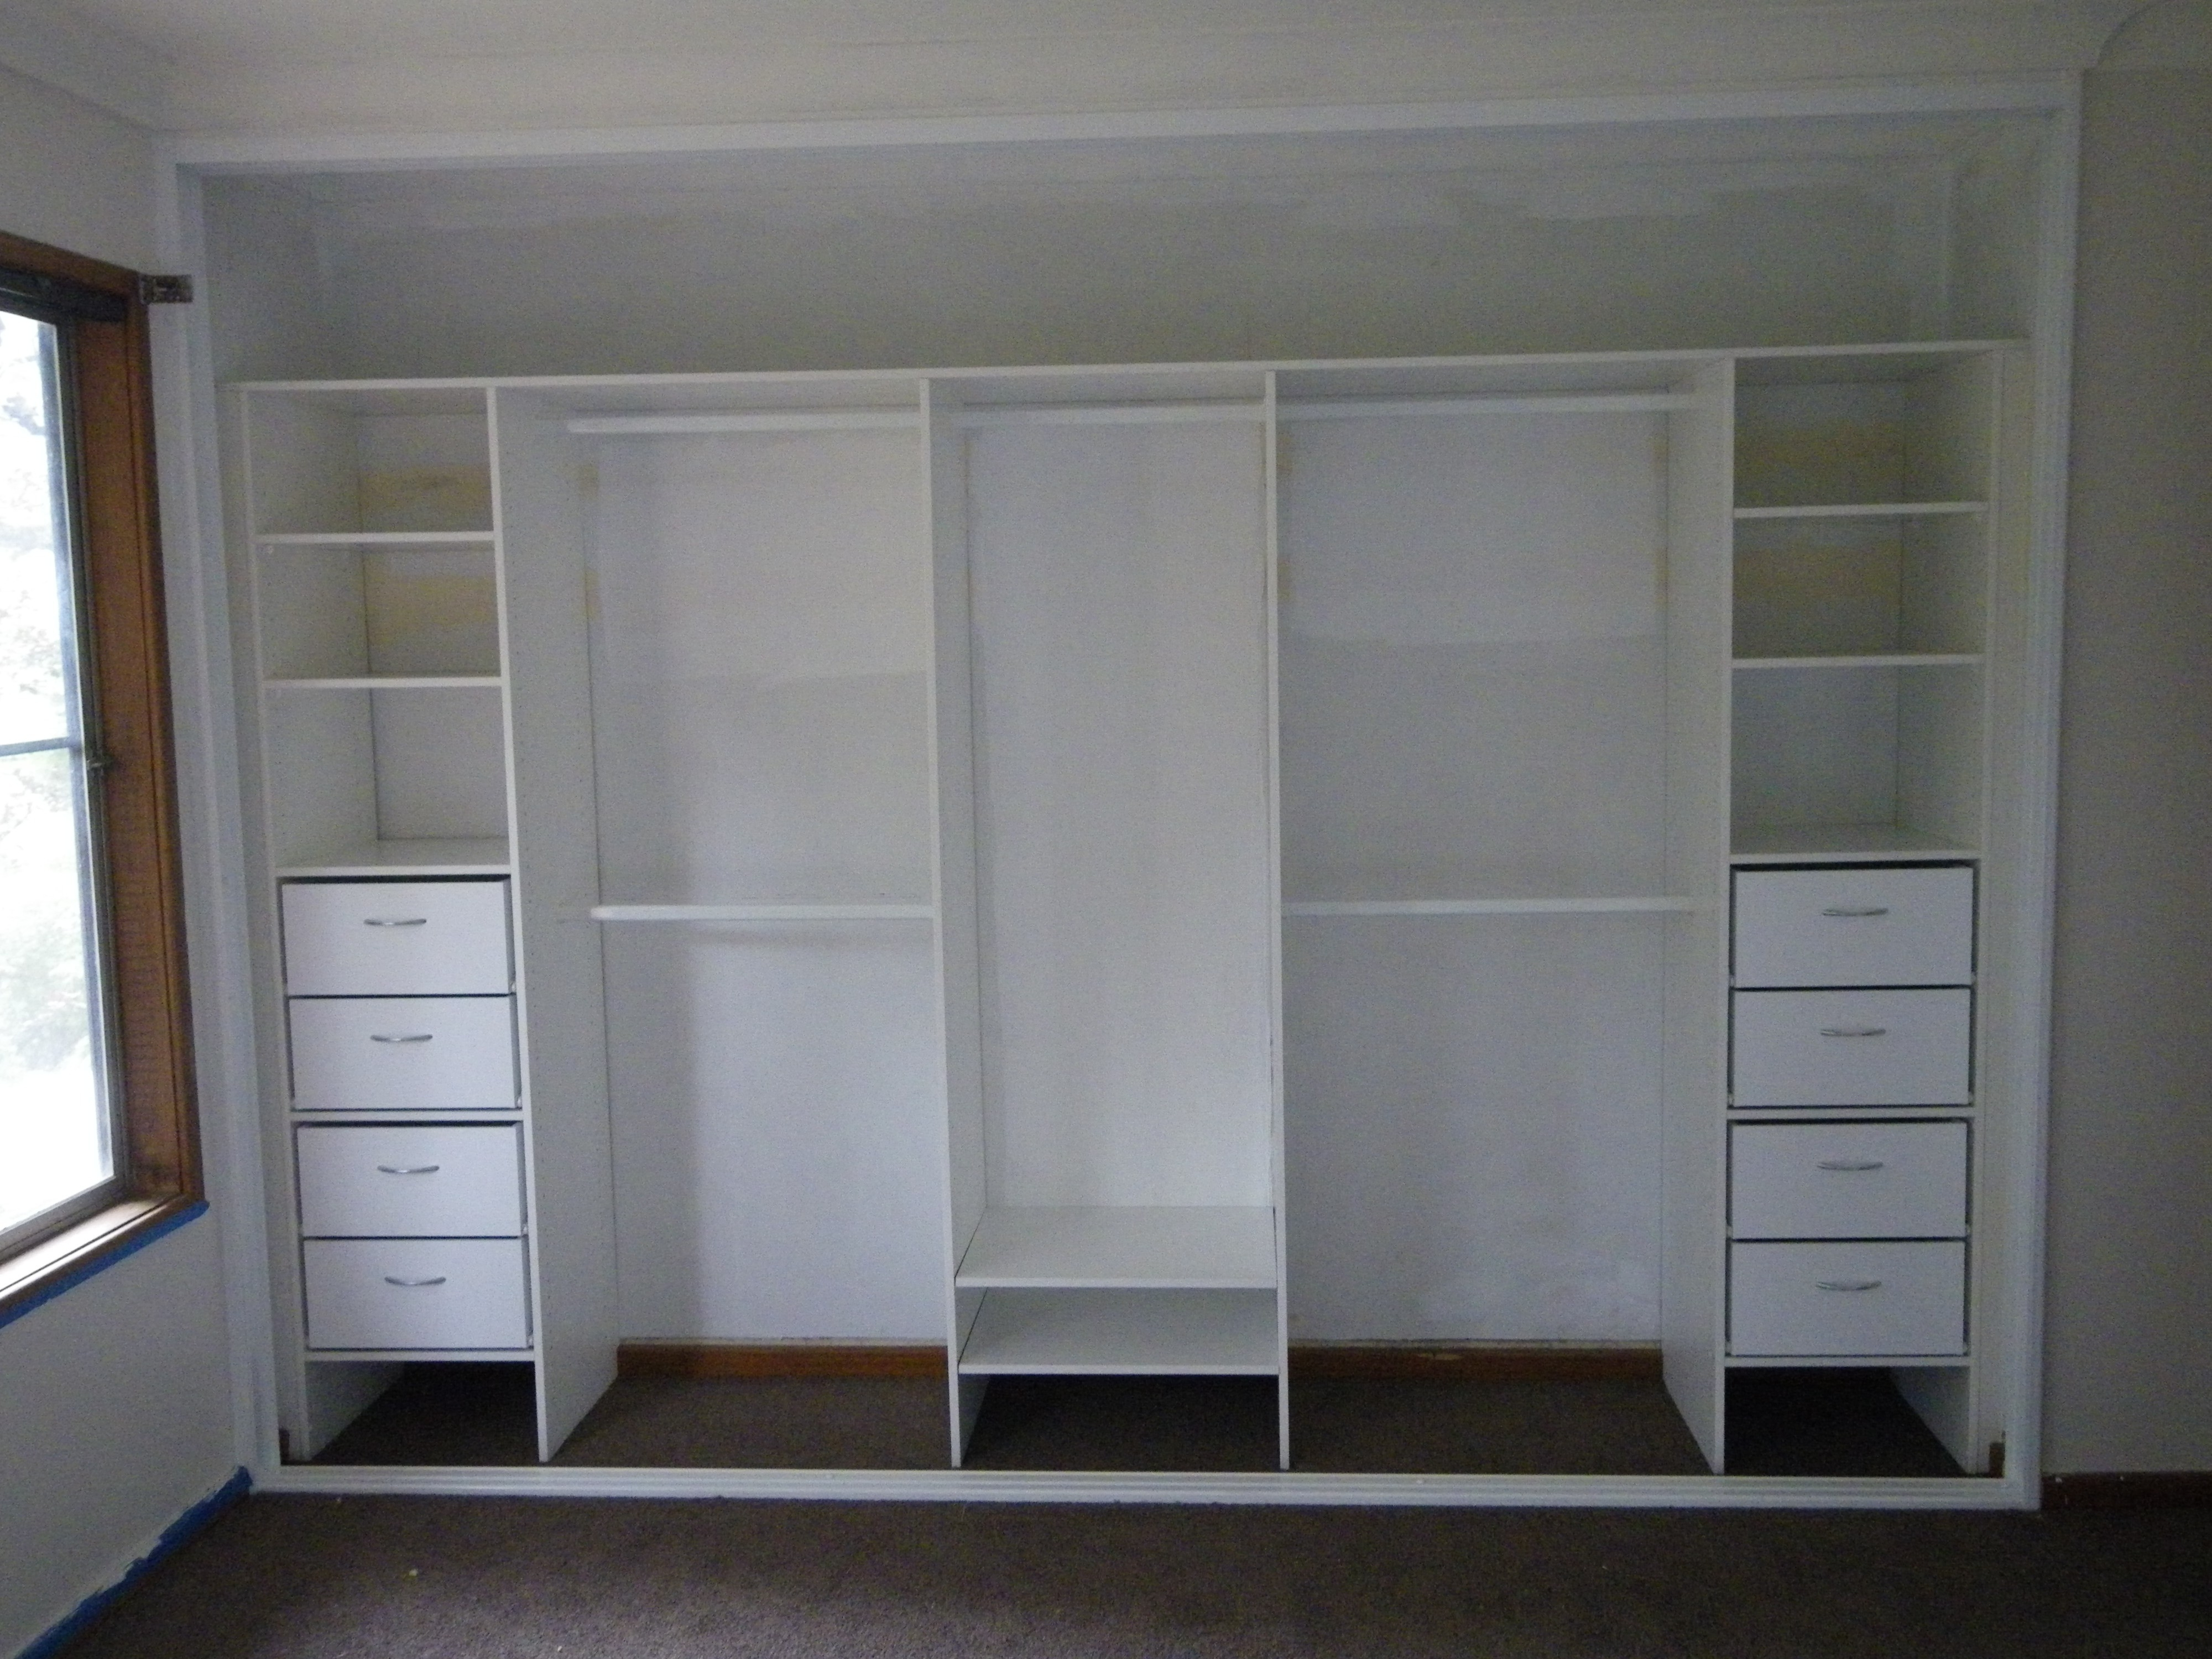 Large White Wardrobes With Drawers Within Well Known Vintage White Wooden Wardrobe With Inside Shelves And Numerous (View 7 of 15)